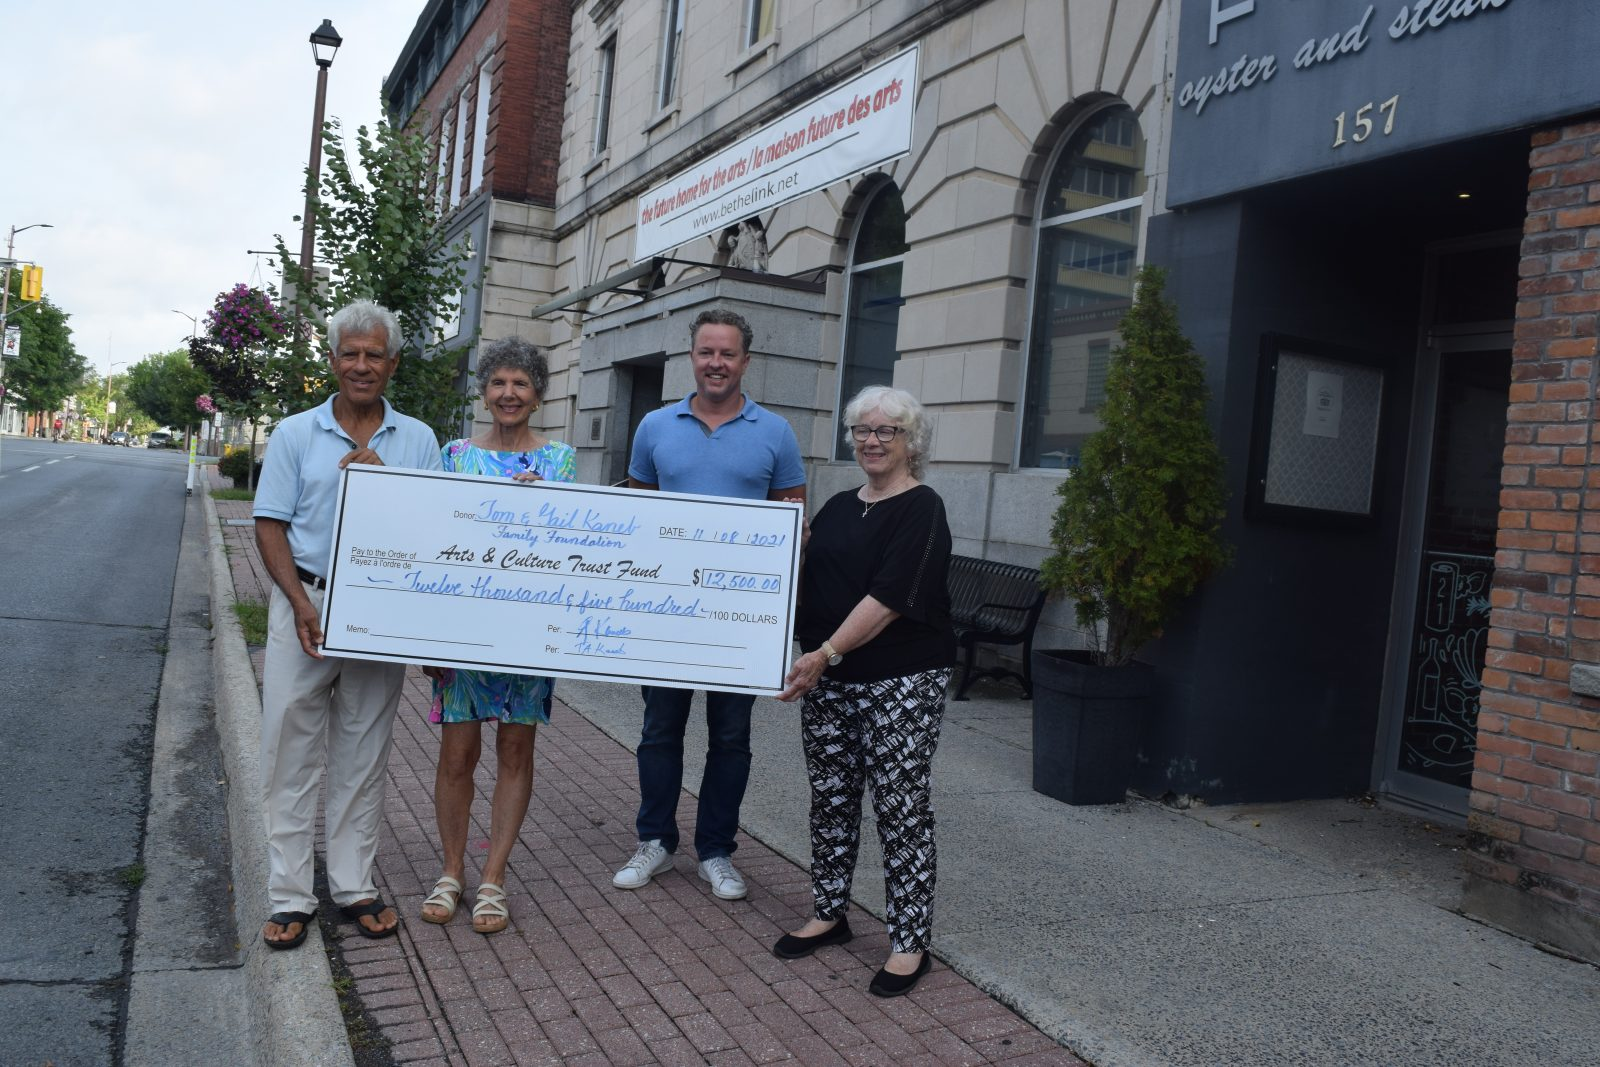 Kaneb family supports Arts Centre with $12.5K donation